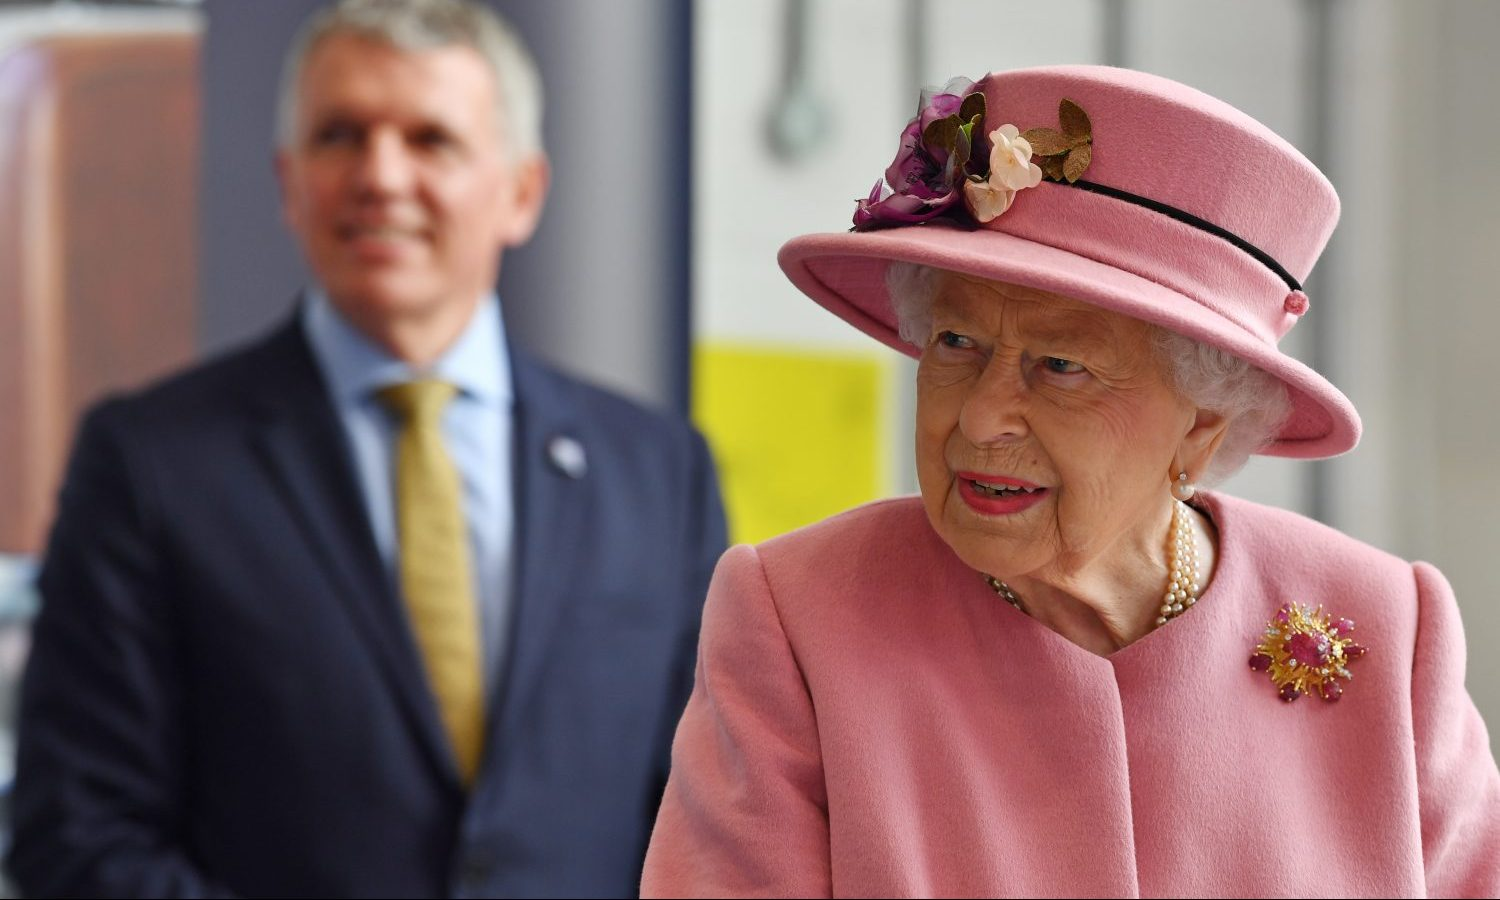 The Queen's First In-Person Visit Since March Has Sparked Outrage — Here's Why